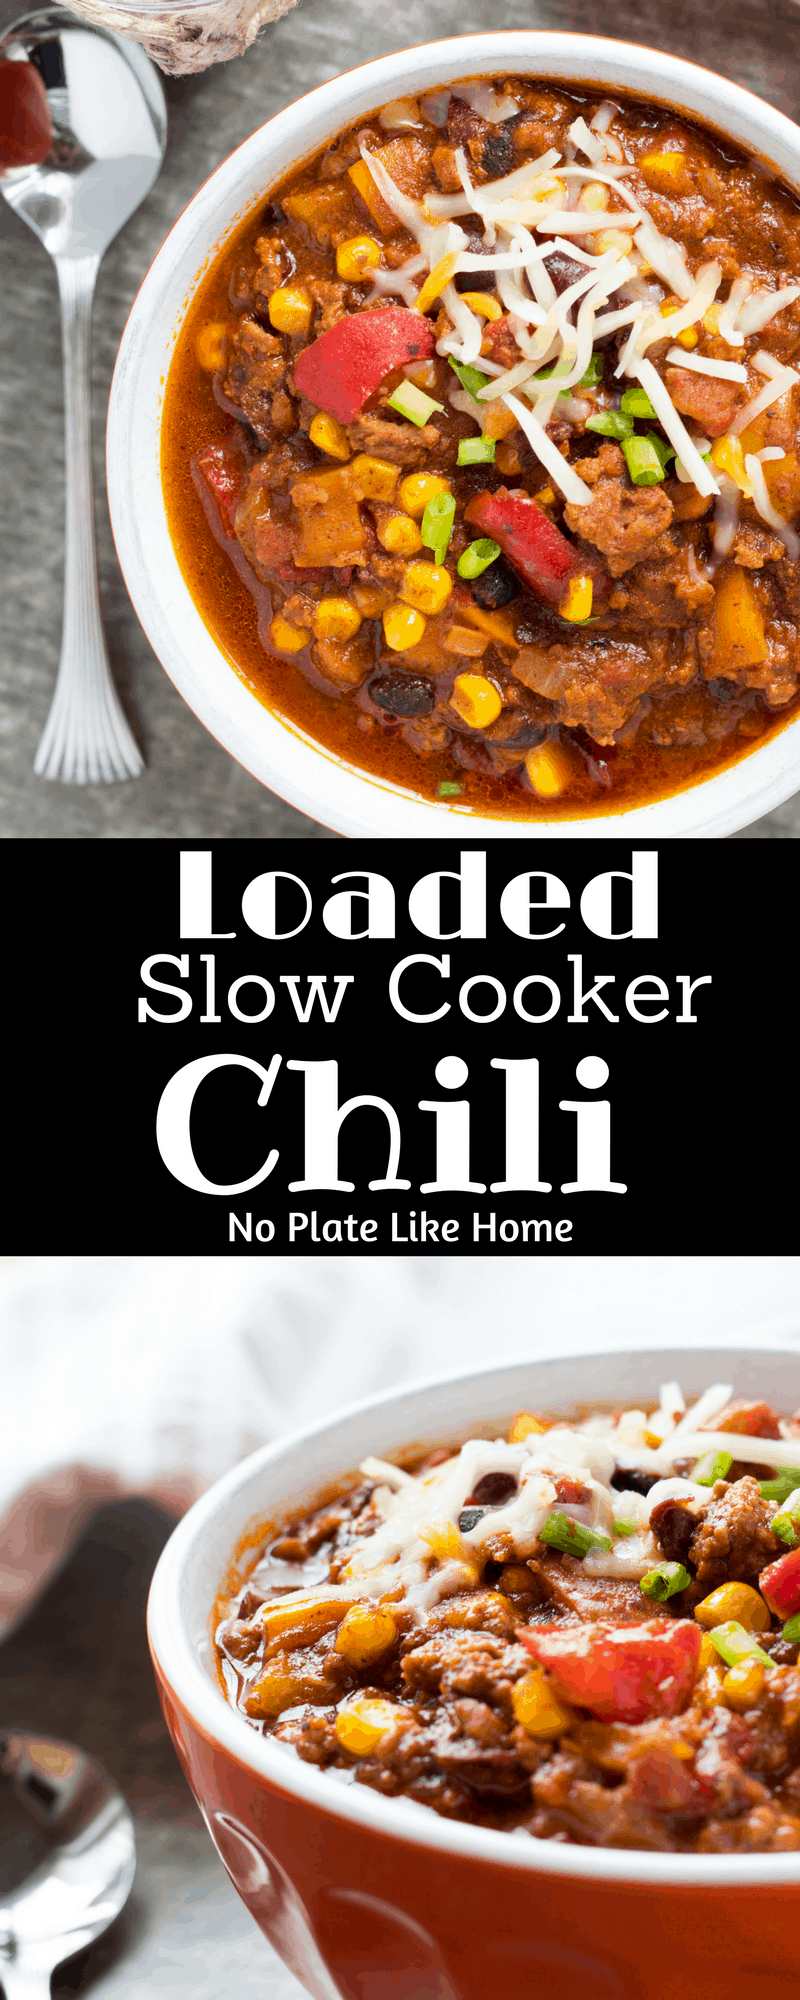 Loaded Slow Cooker Santa Fe Chili - No Plate Like Home